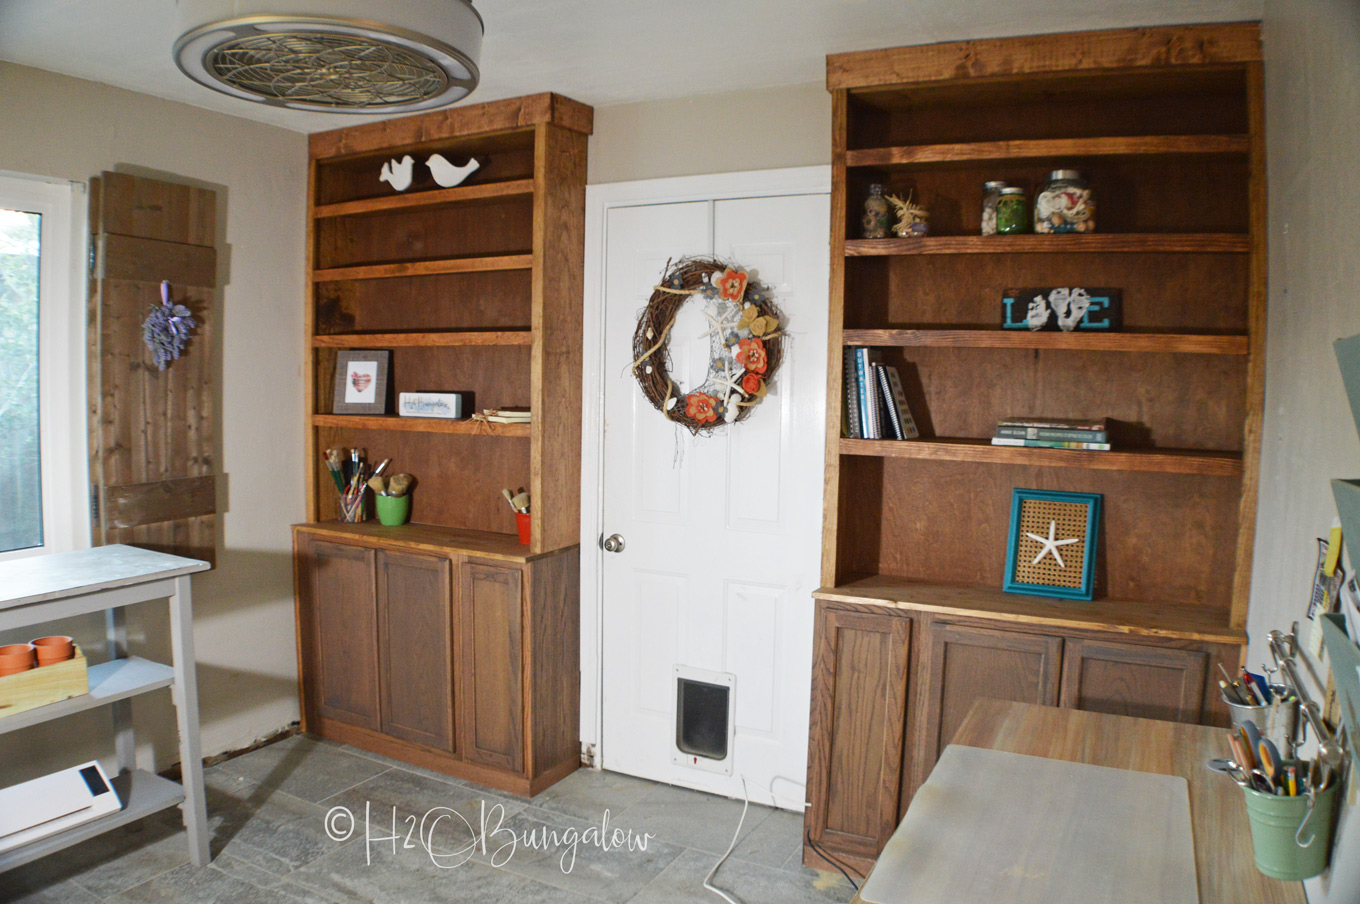 Attirant How To Build Built In Bookcases With Cabinets Is A Detailed DIY Tutorial  With Lots Of